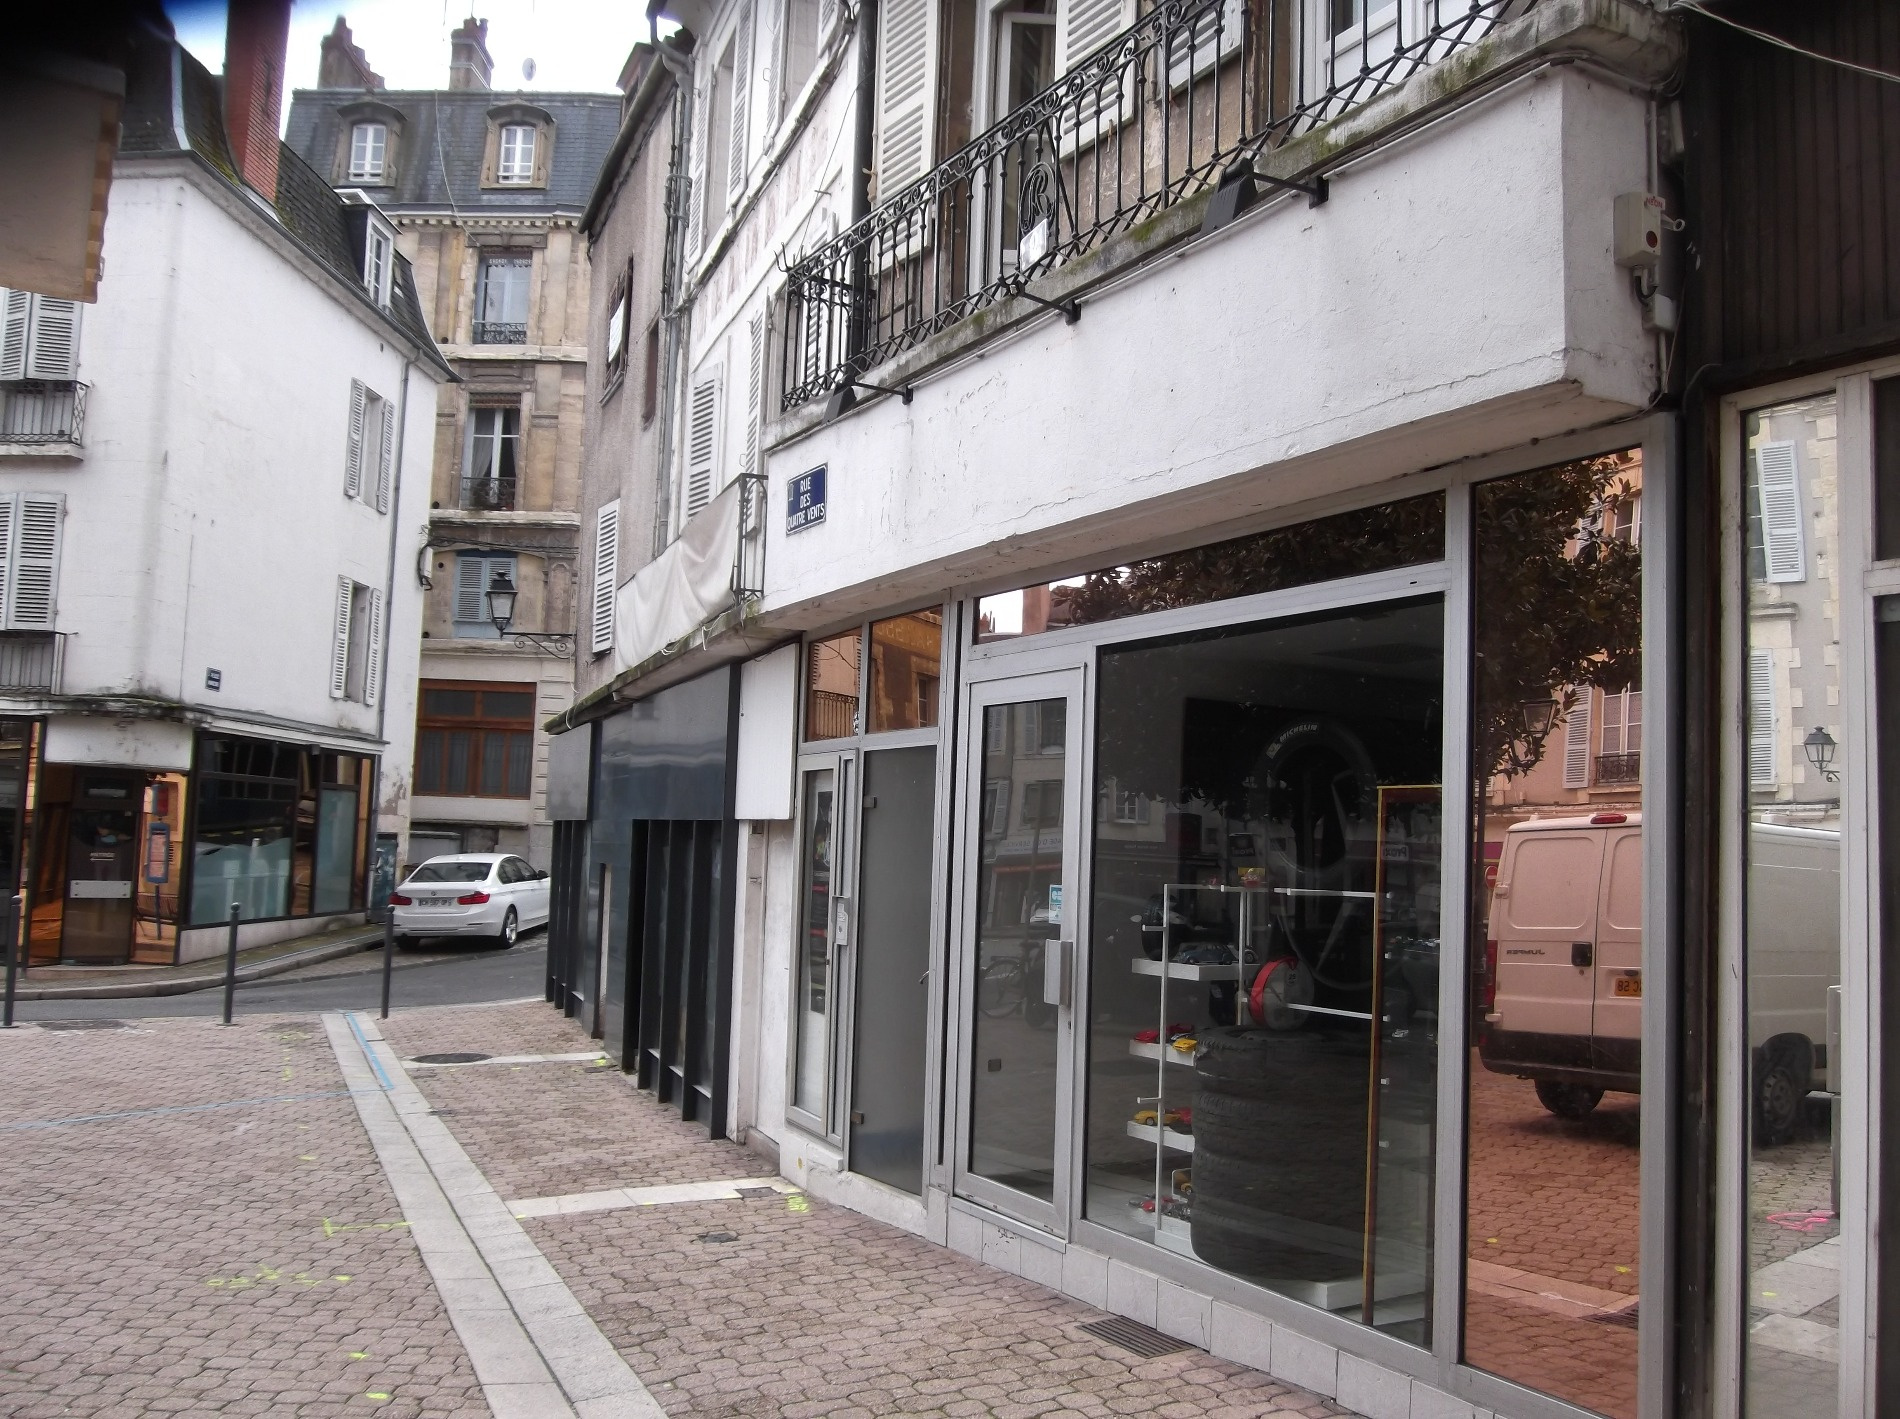 Location nevers rue pietonne location ou location vente for Vente ou location